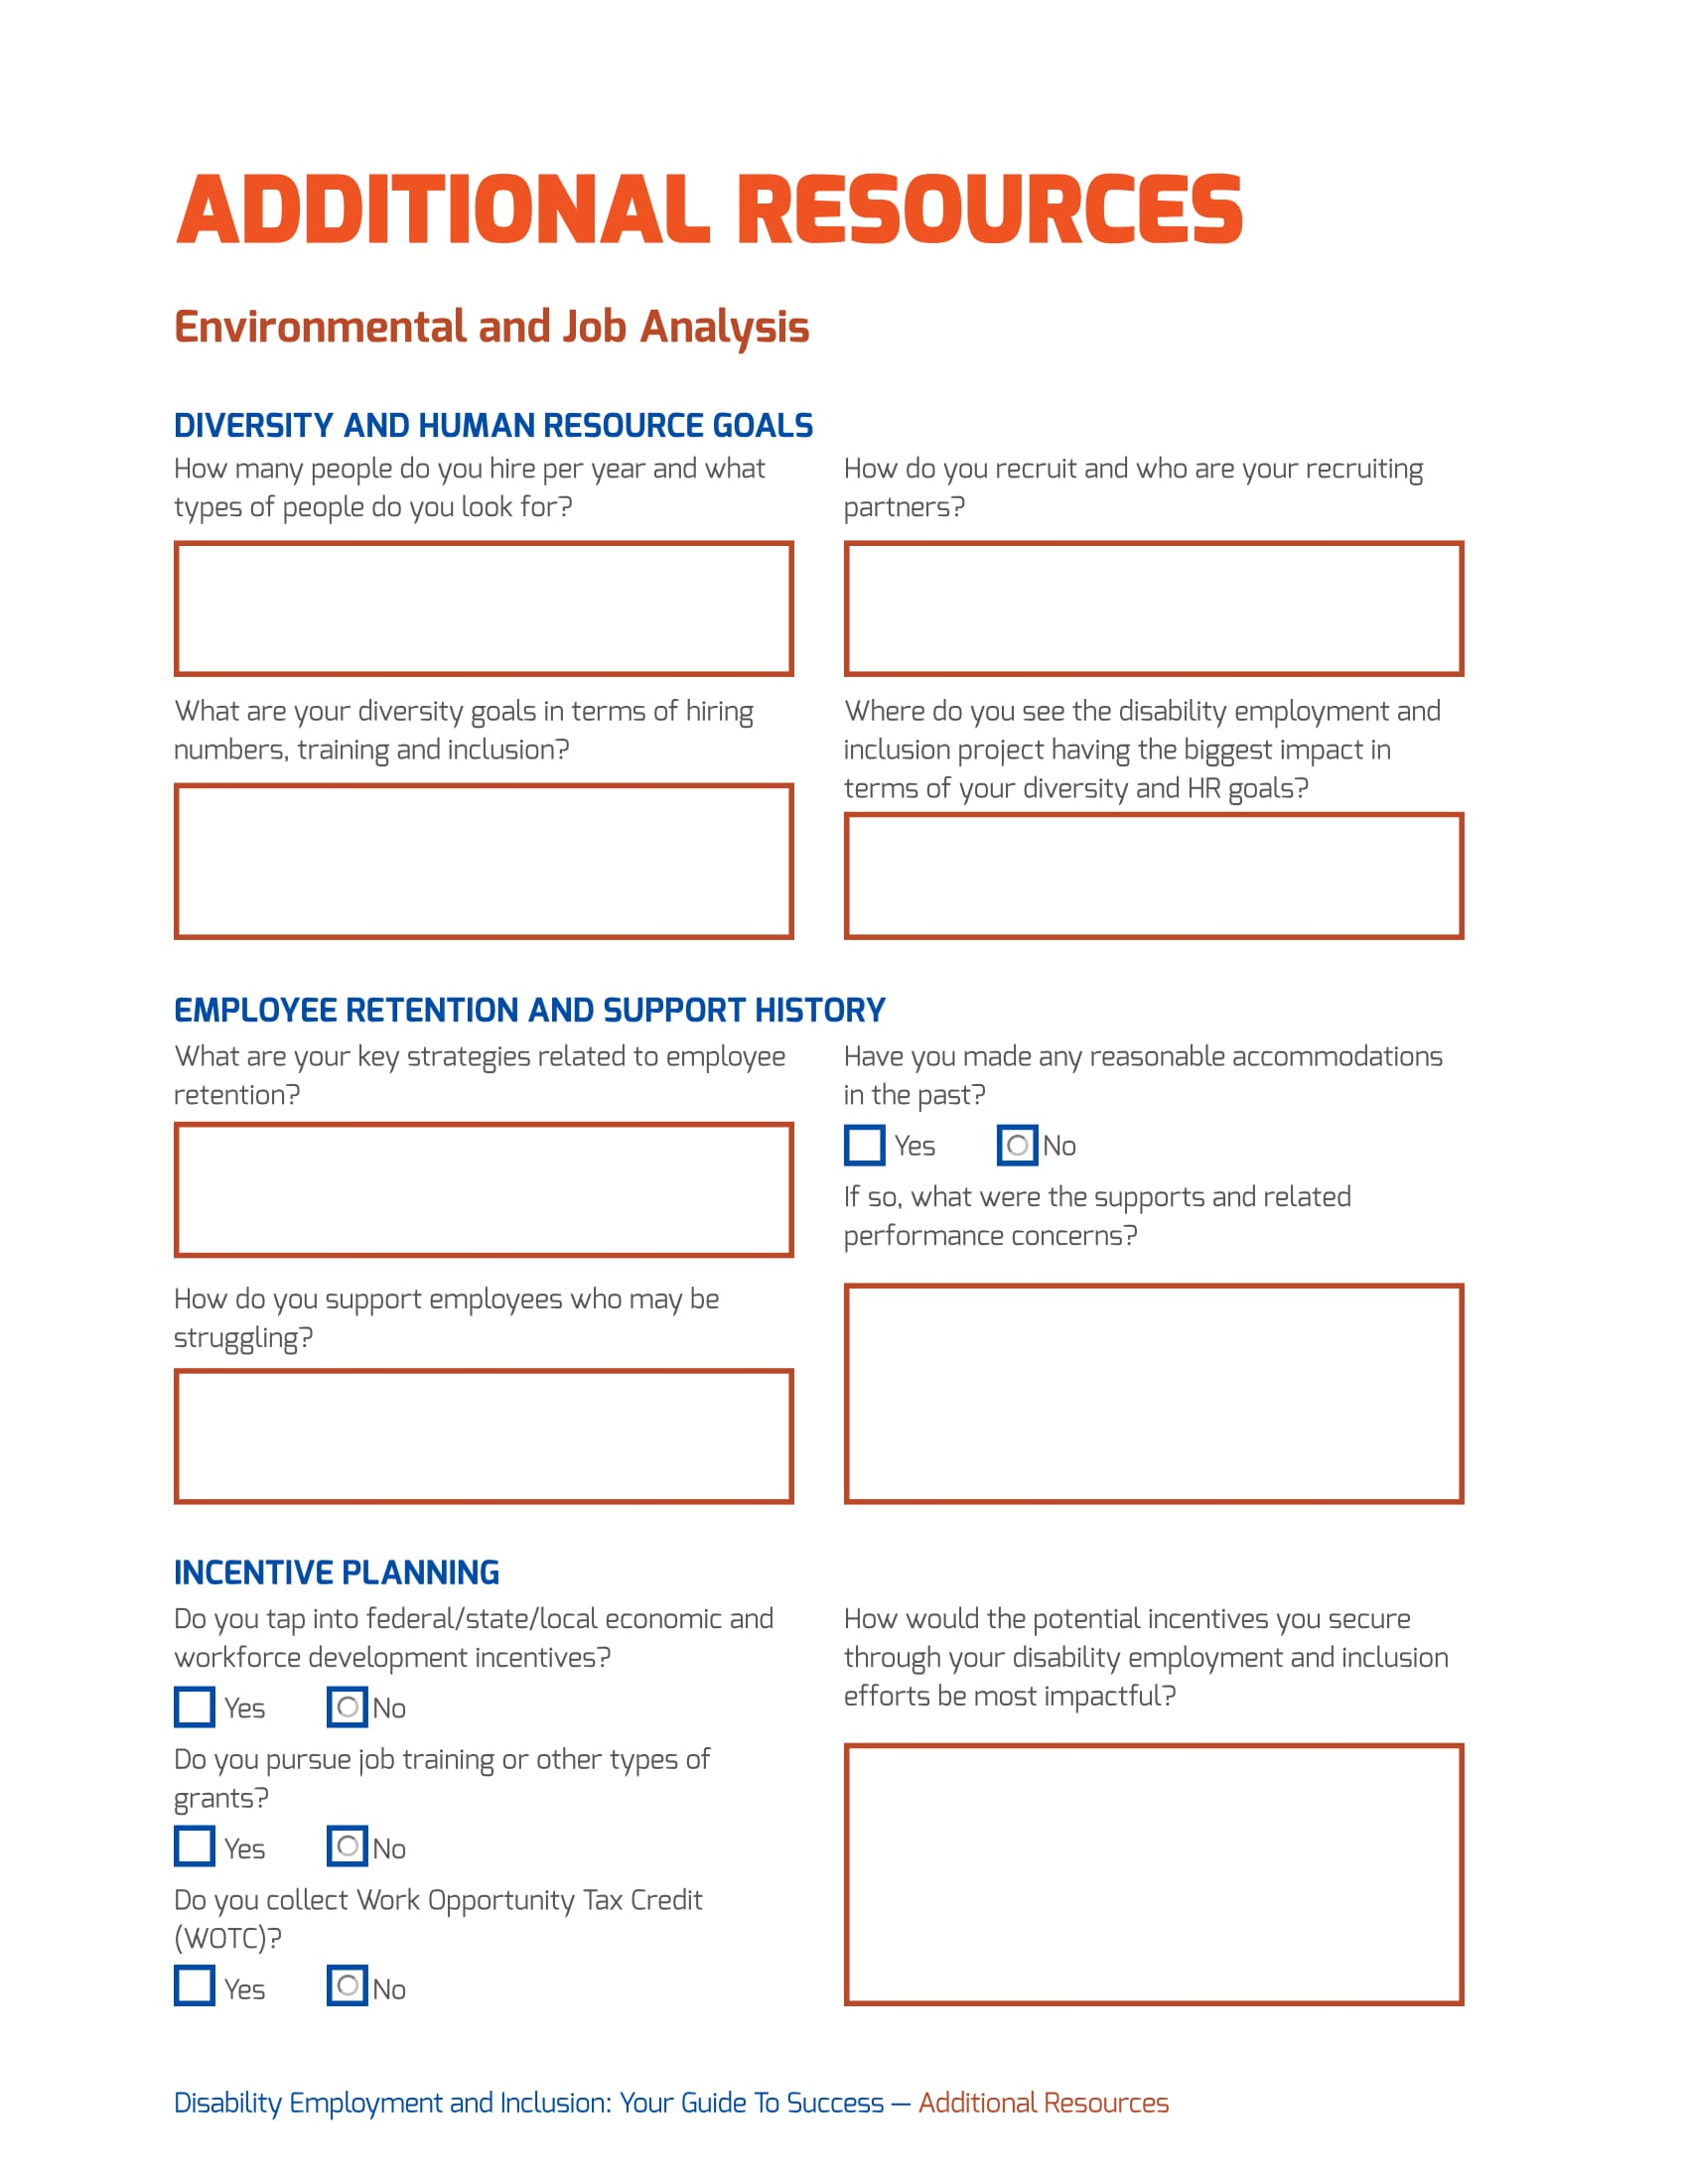 workplace environment and job analysis form 1